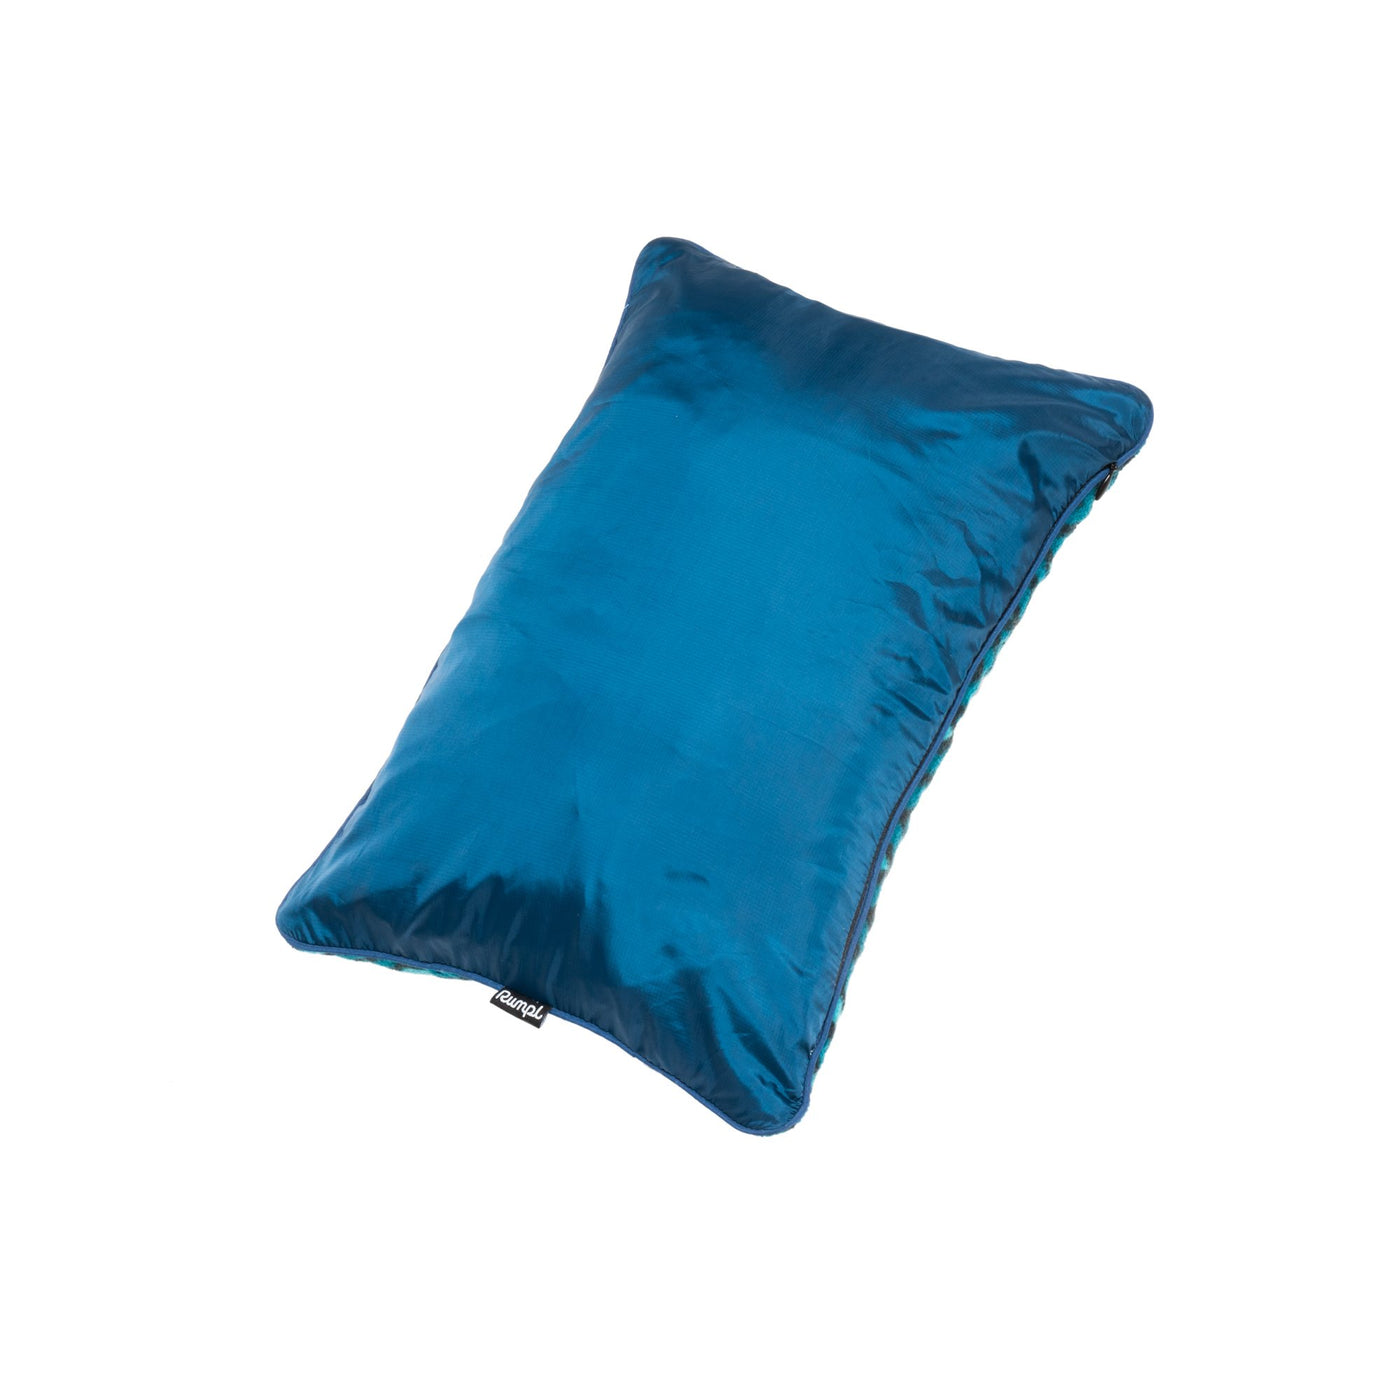 Rumpl | The Stuffable Pillowcase - Deepwater | One Size |  | Stuffable Pillow